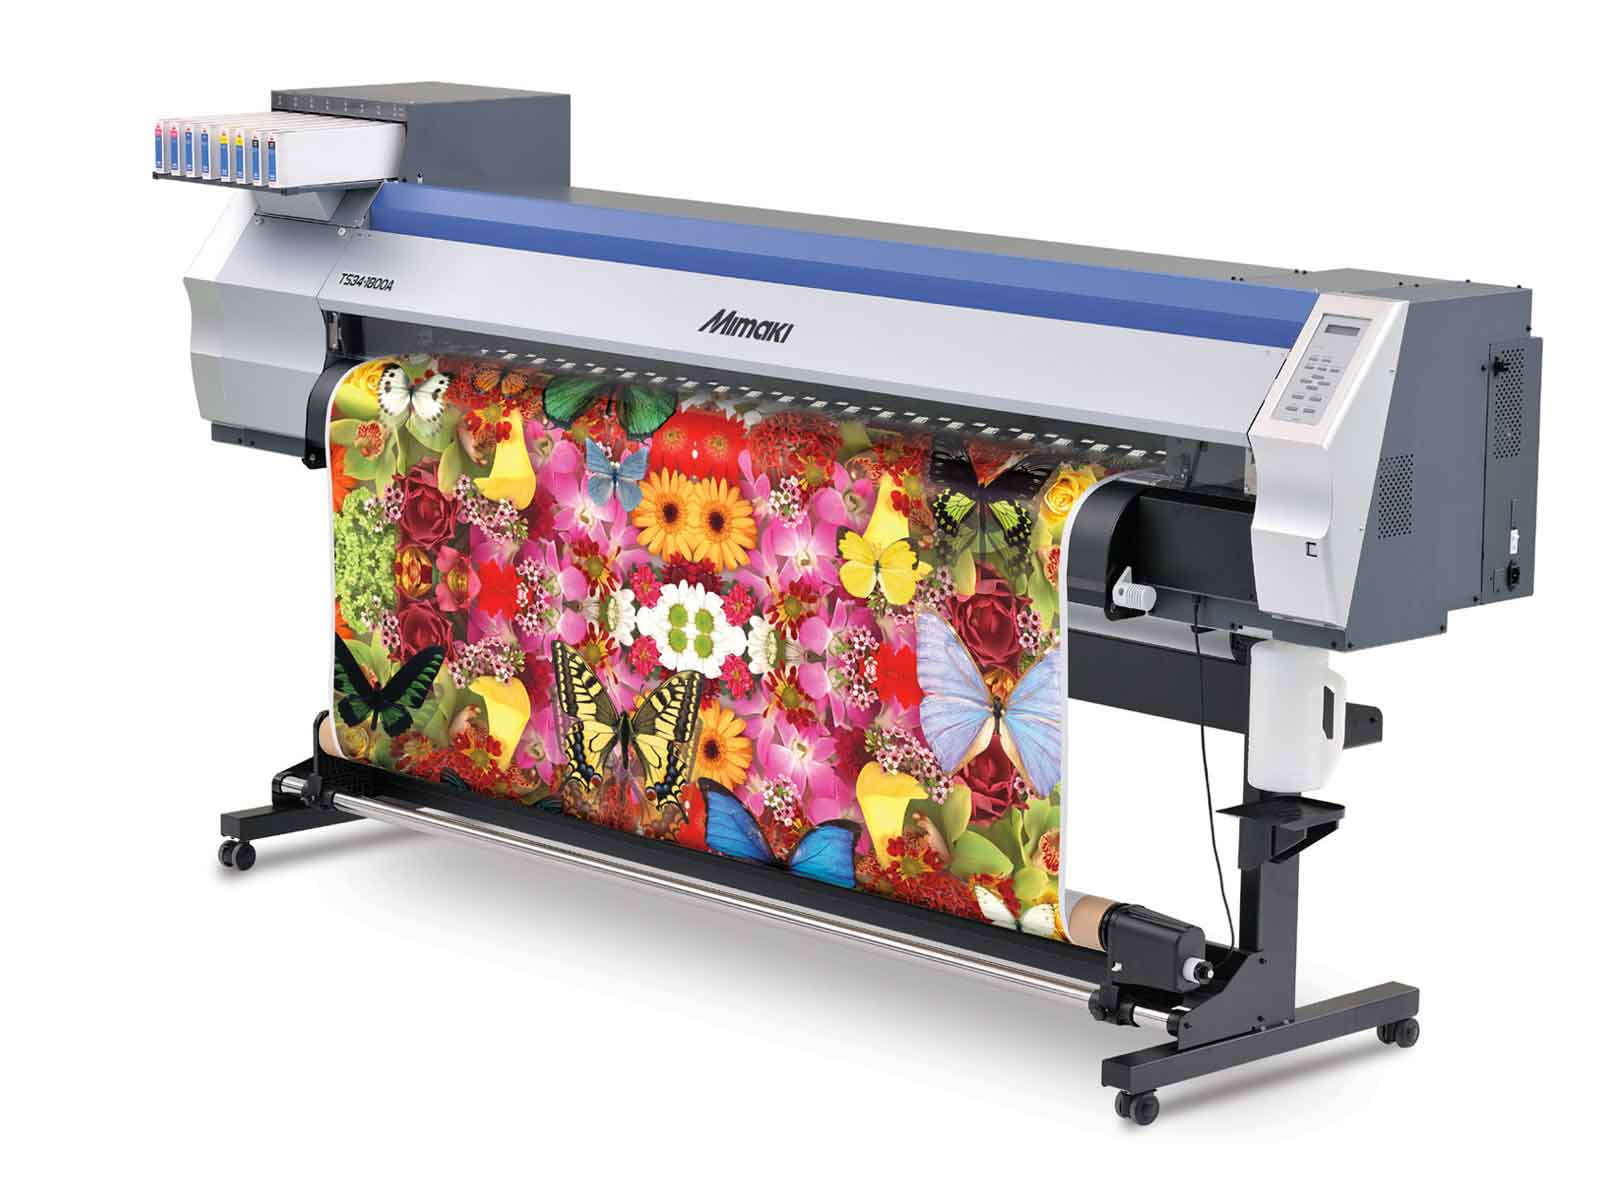 Trade Vinyl Printing Onto Almost Any Self Adhesive Media